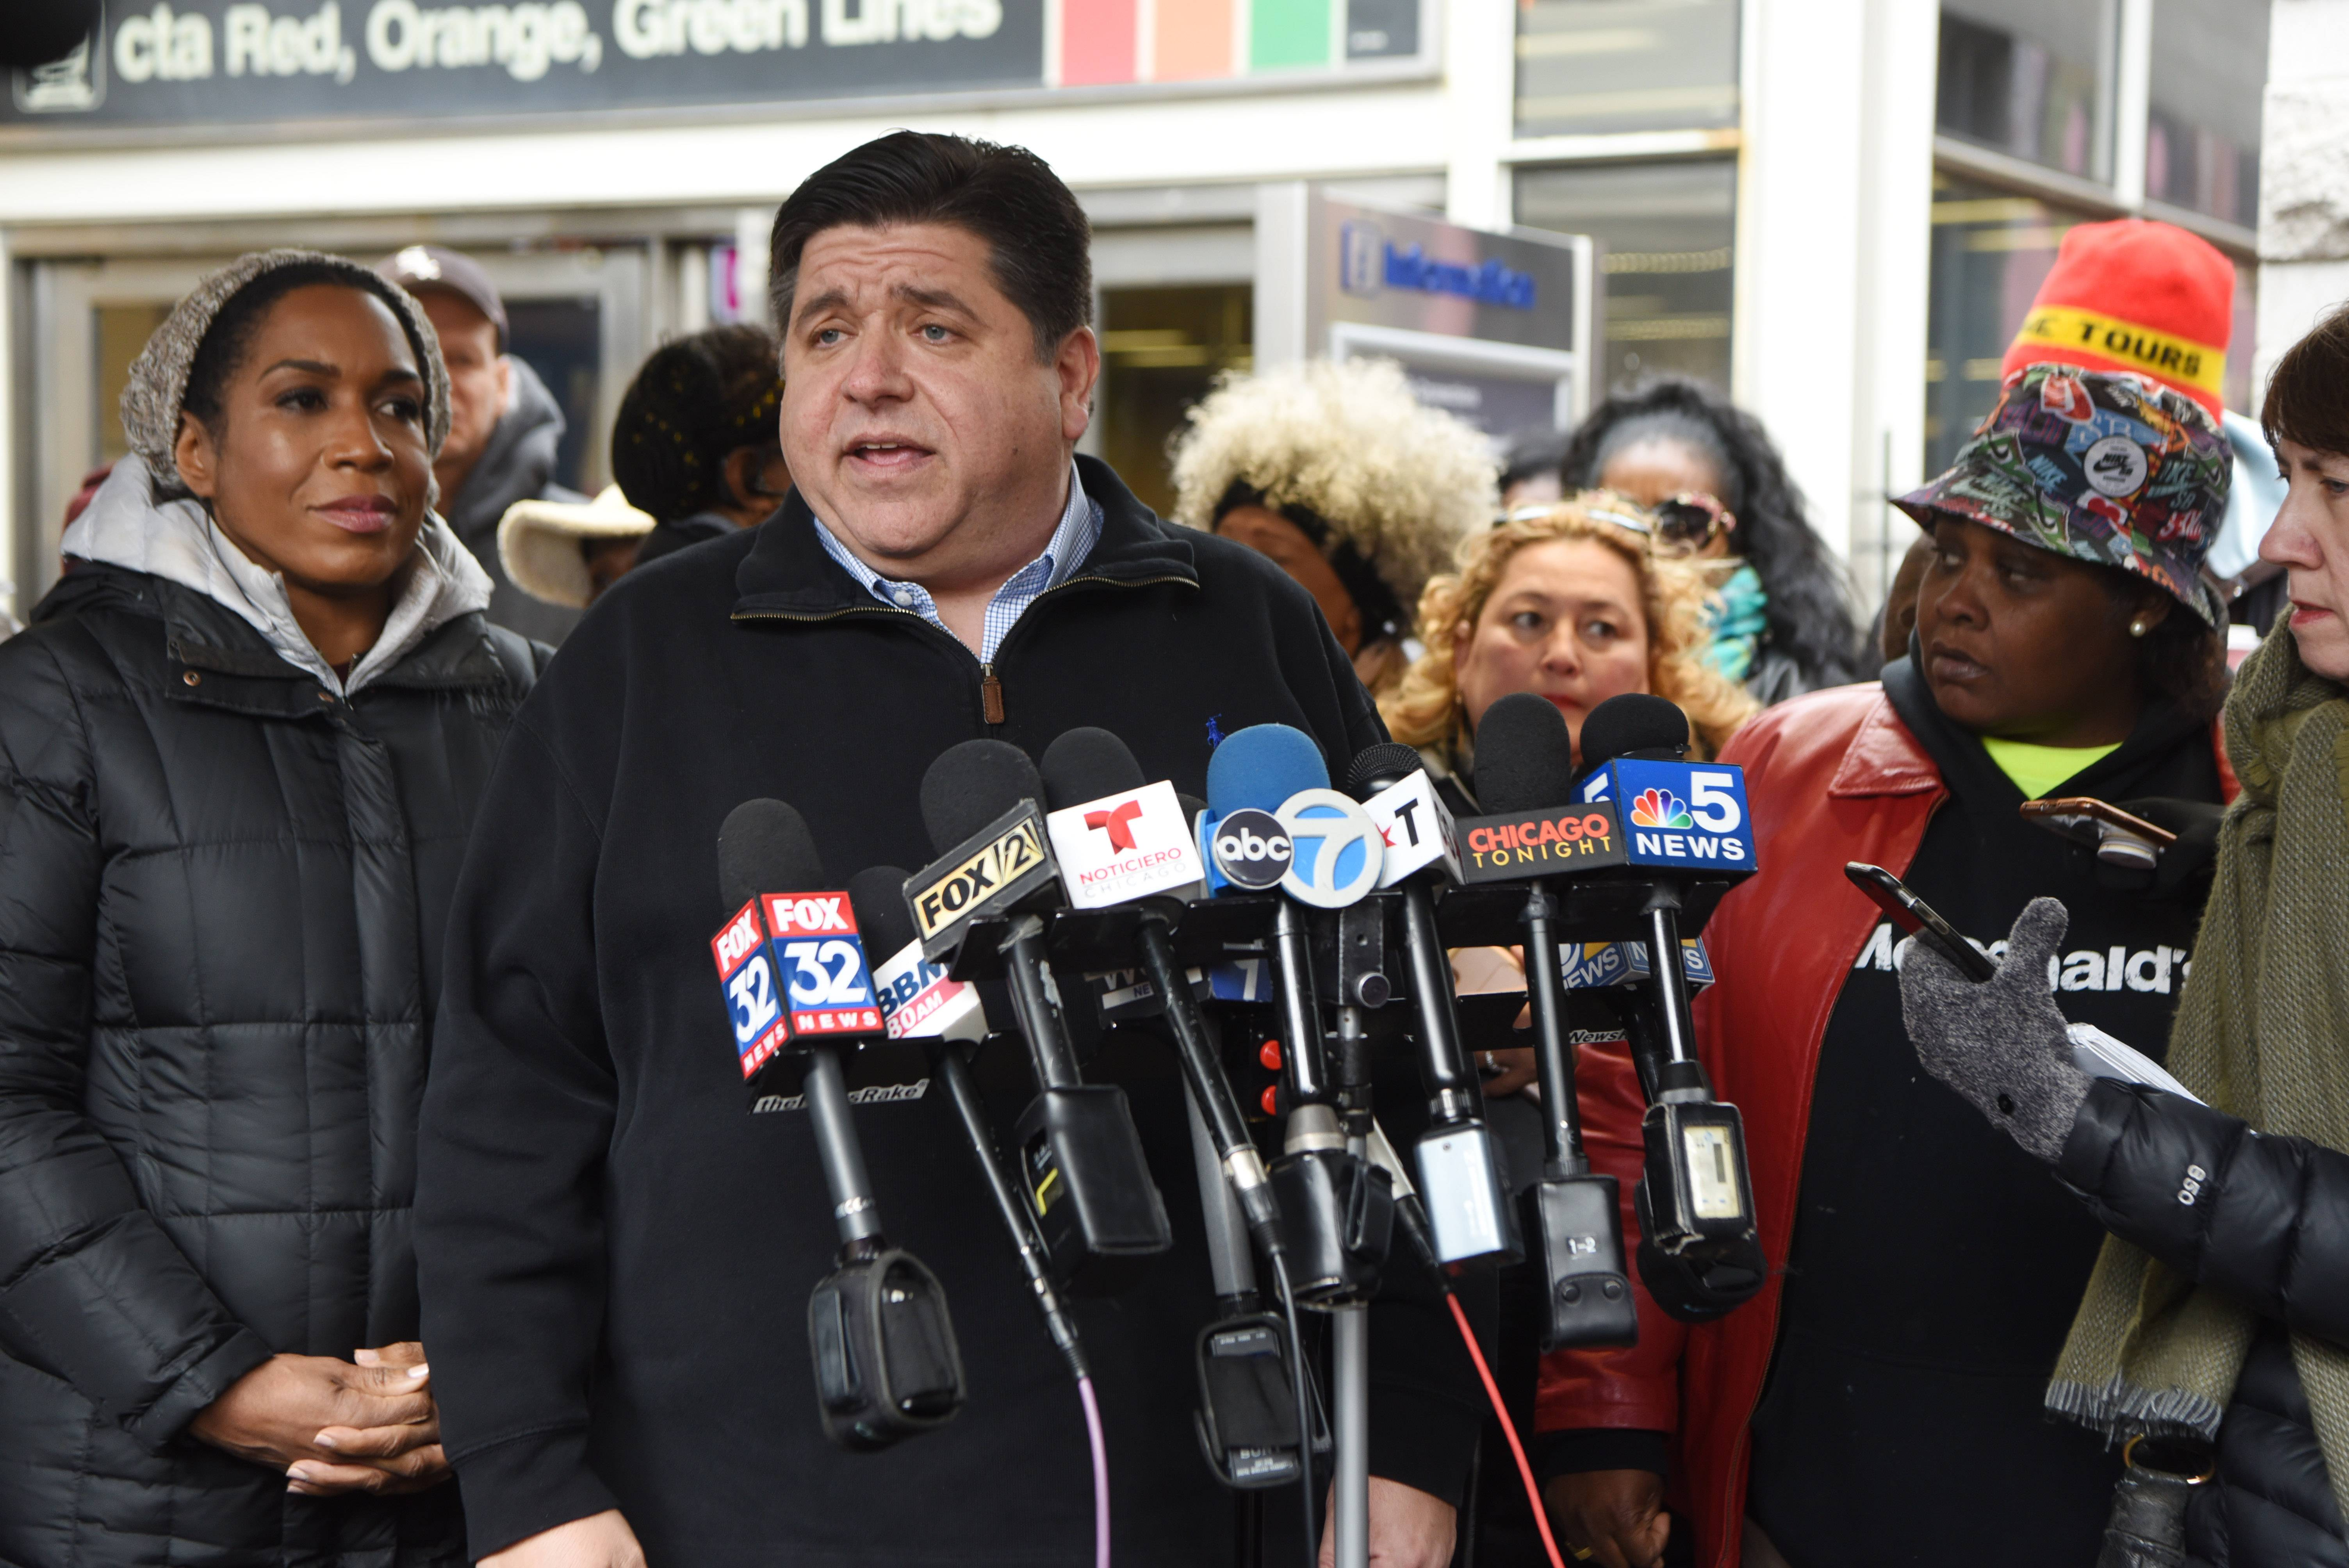 Gov.-elect J.B. Pritzker and running mate Juliana Stratton, left, speak to the media and greet supporters in Chicago Wednesday.